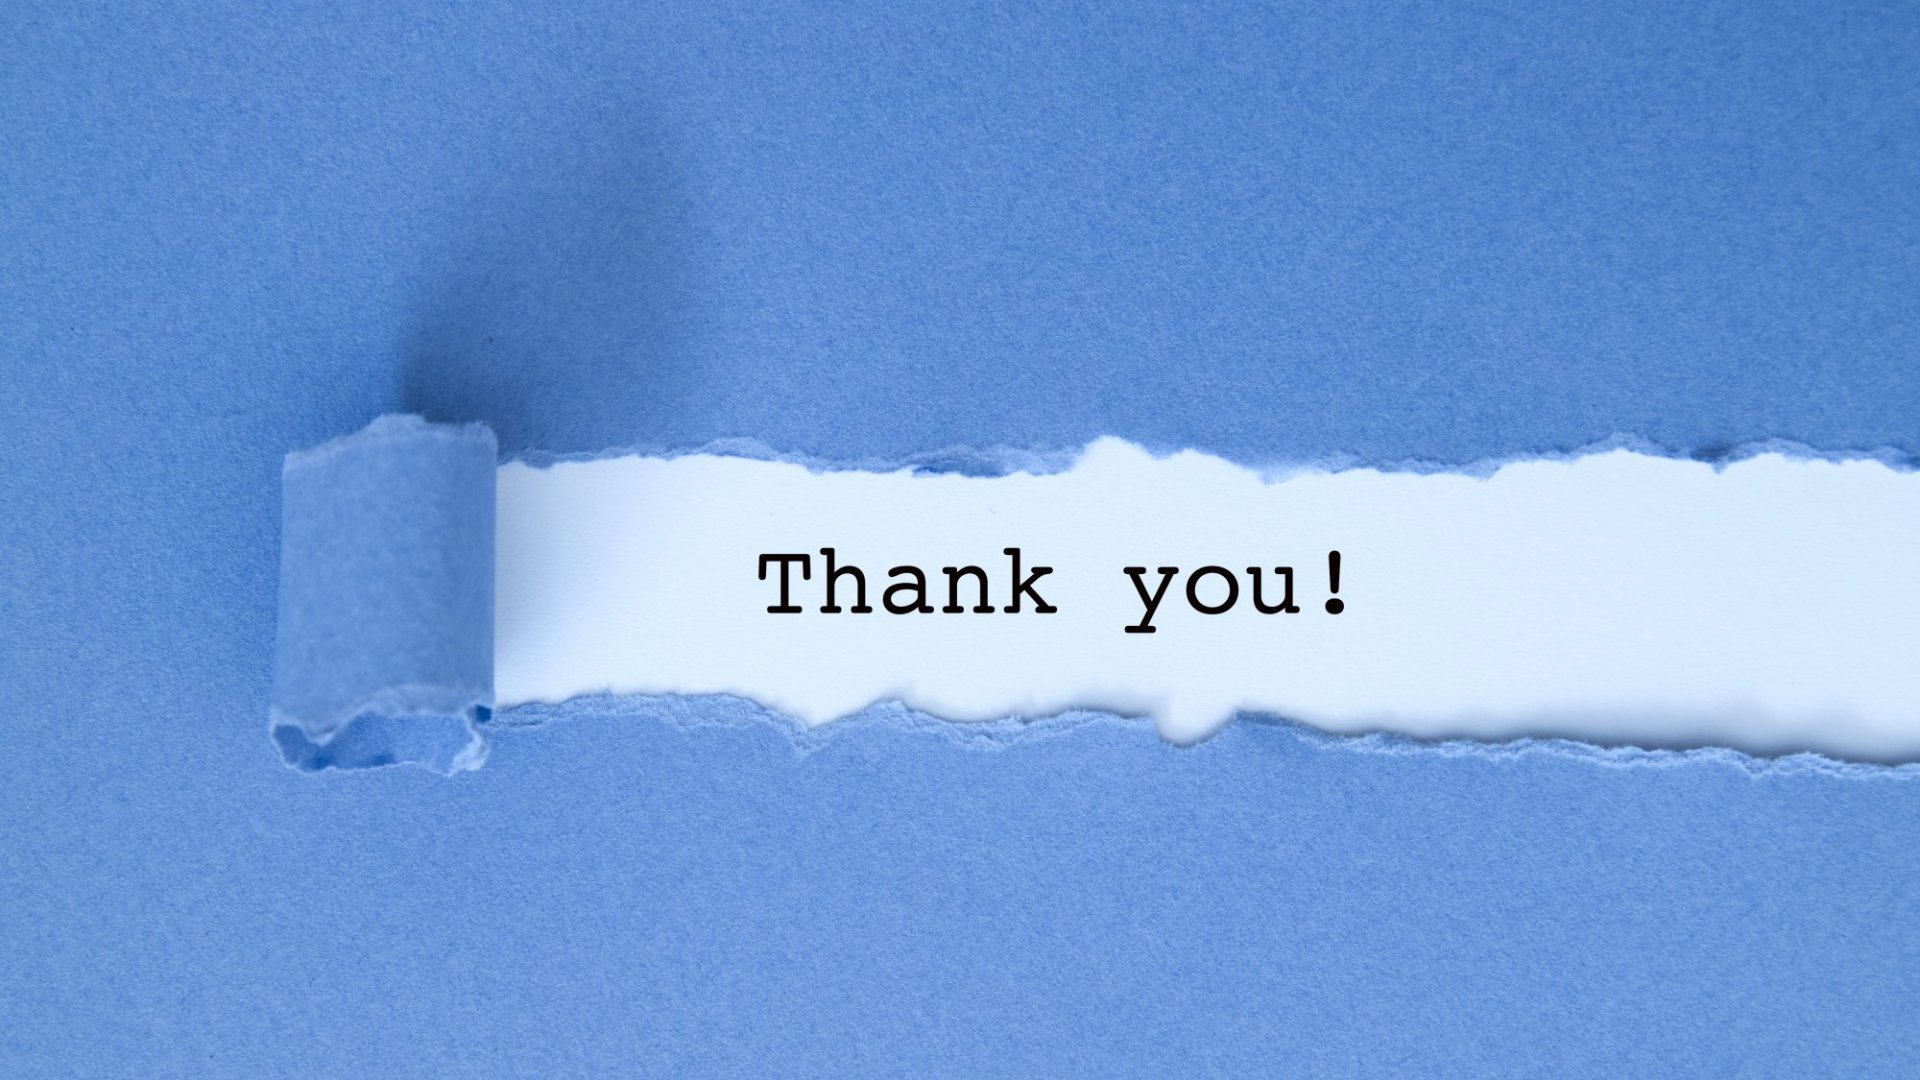 This Holiday Season Express Gratitude at Work By Doing These 4 Things